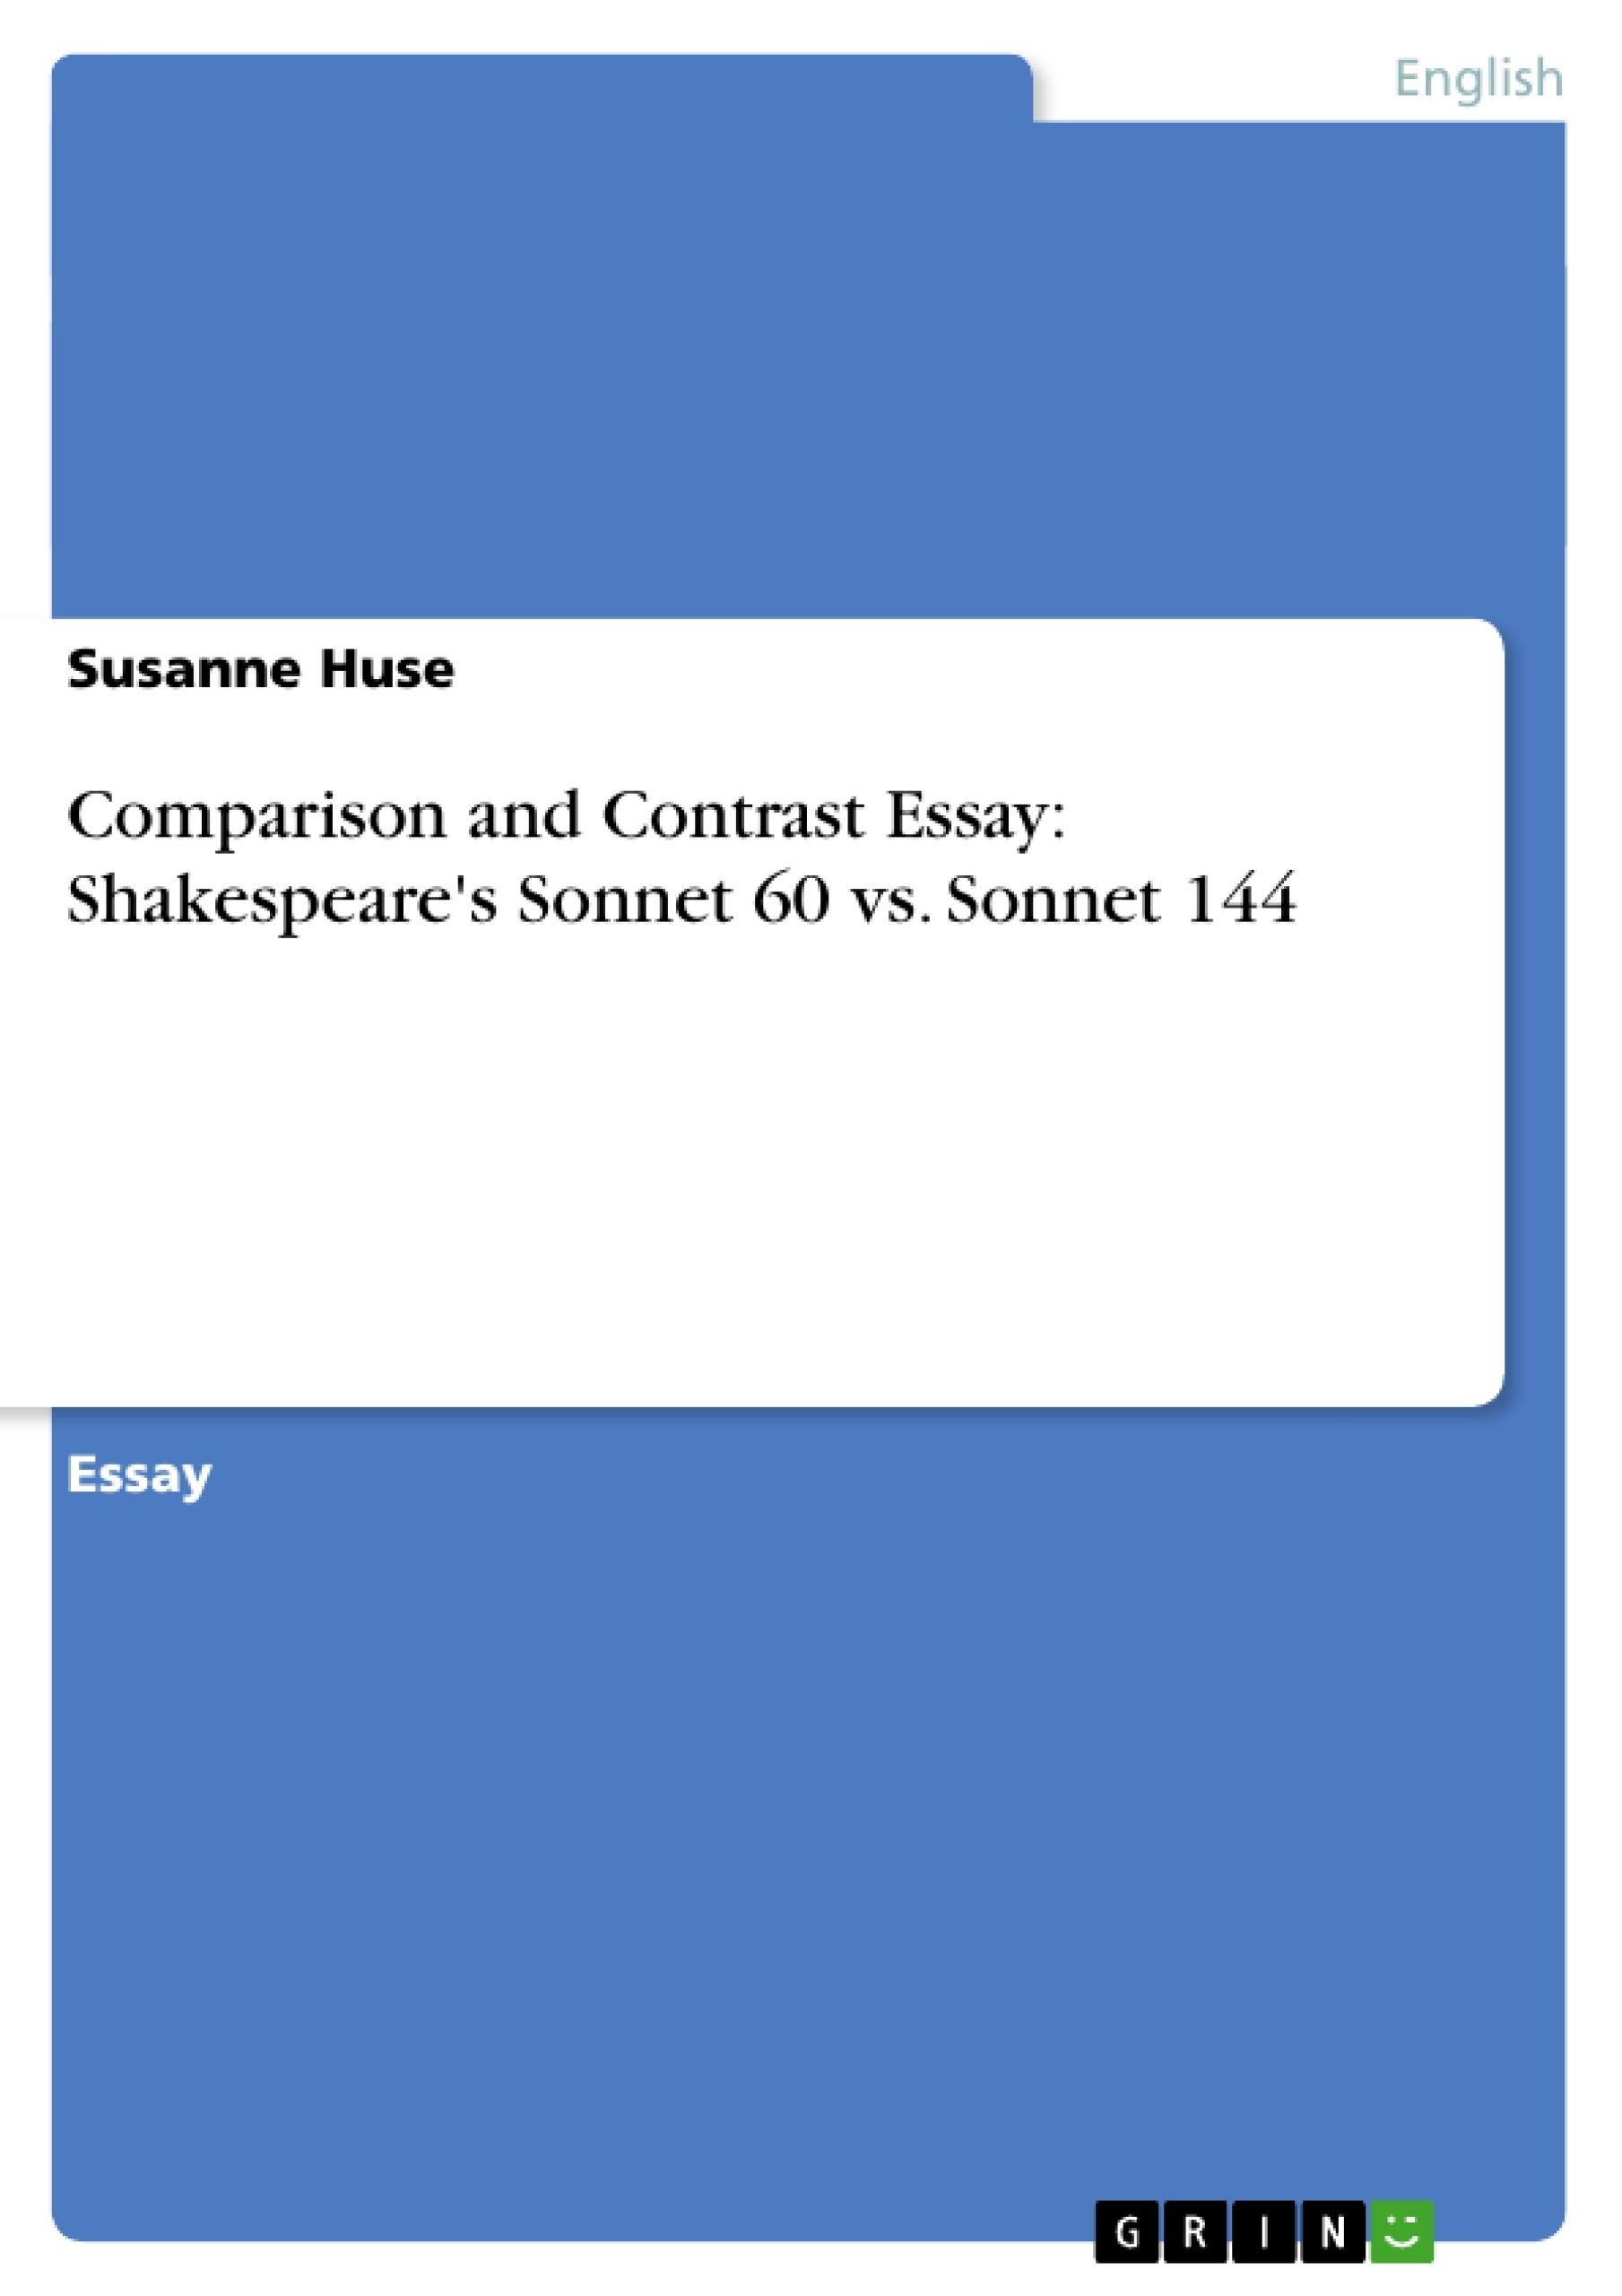 comparison and contrast essay shakespeare s sonnet vs sonnet upload your own papers earn money and win an iphone 7